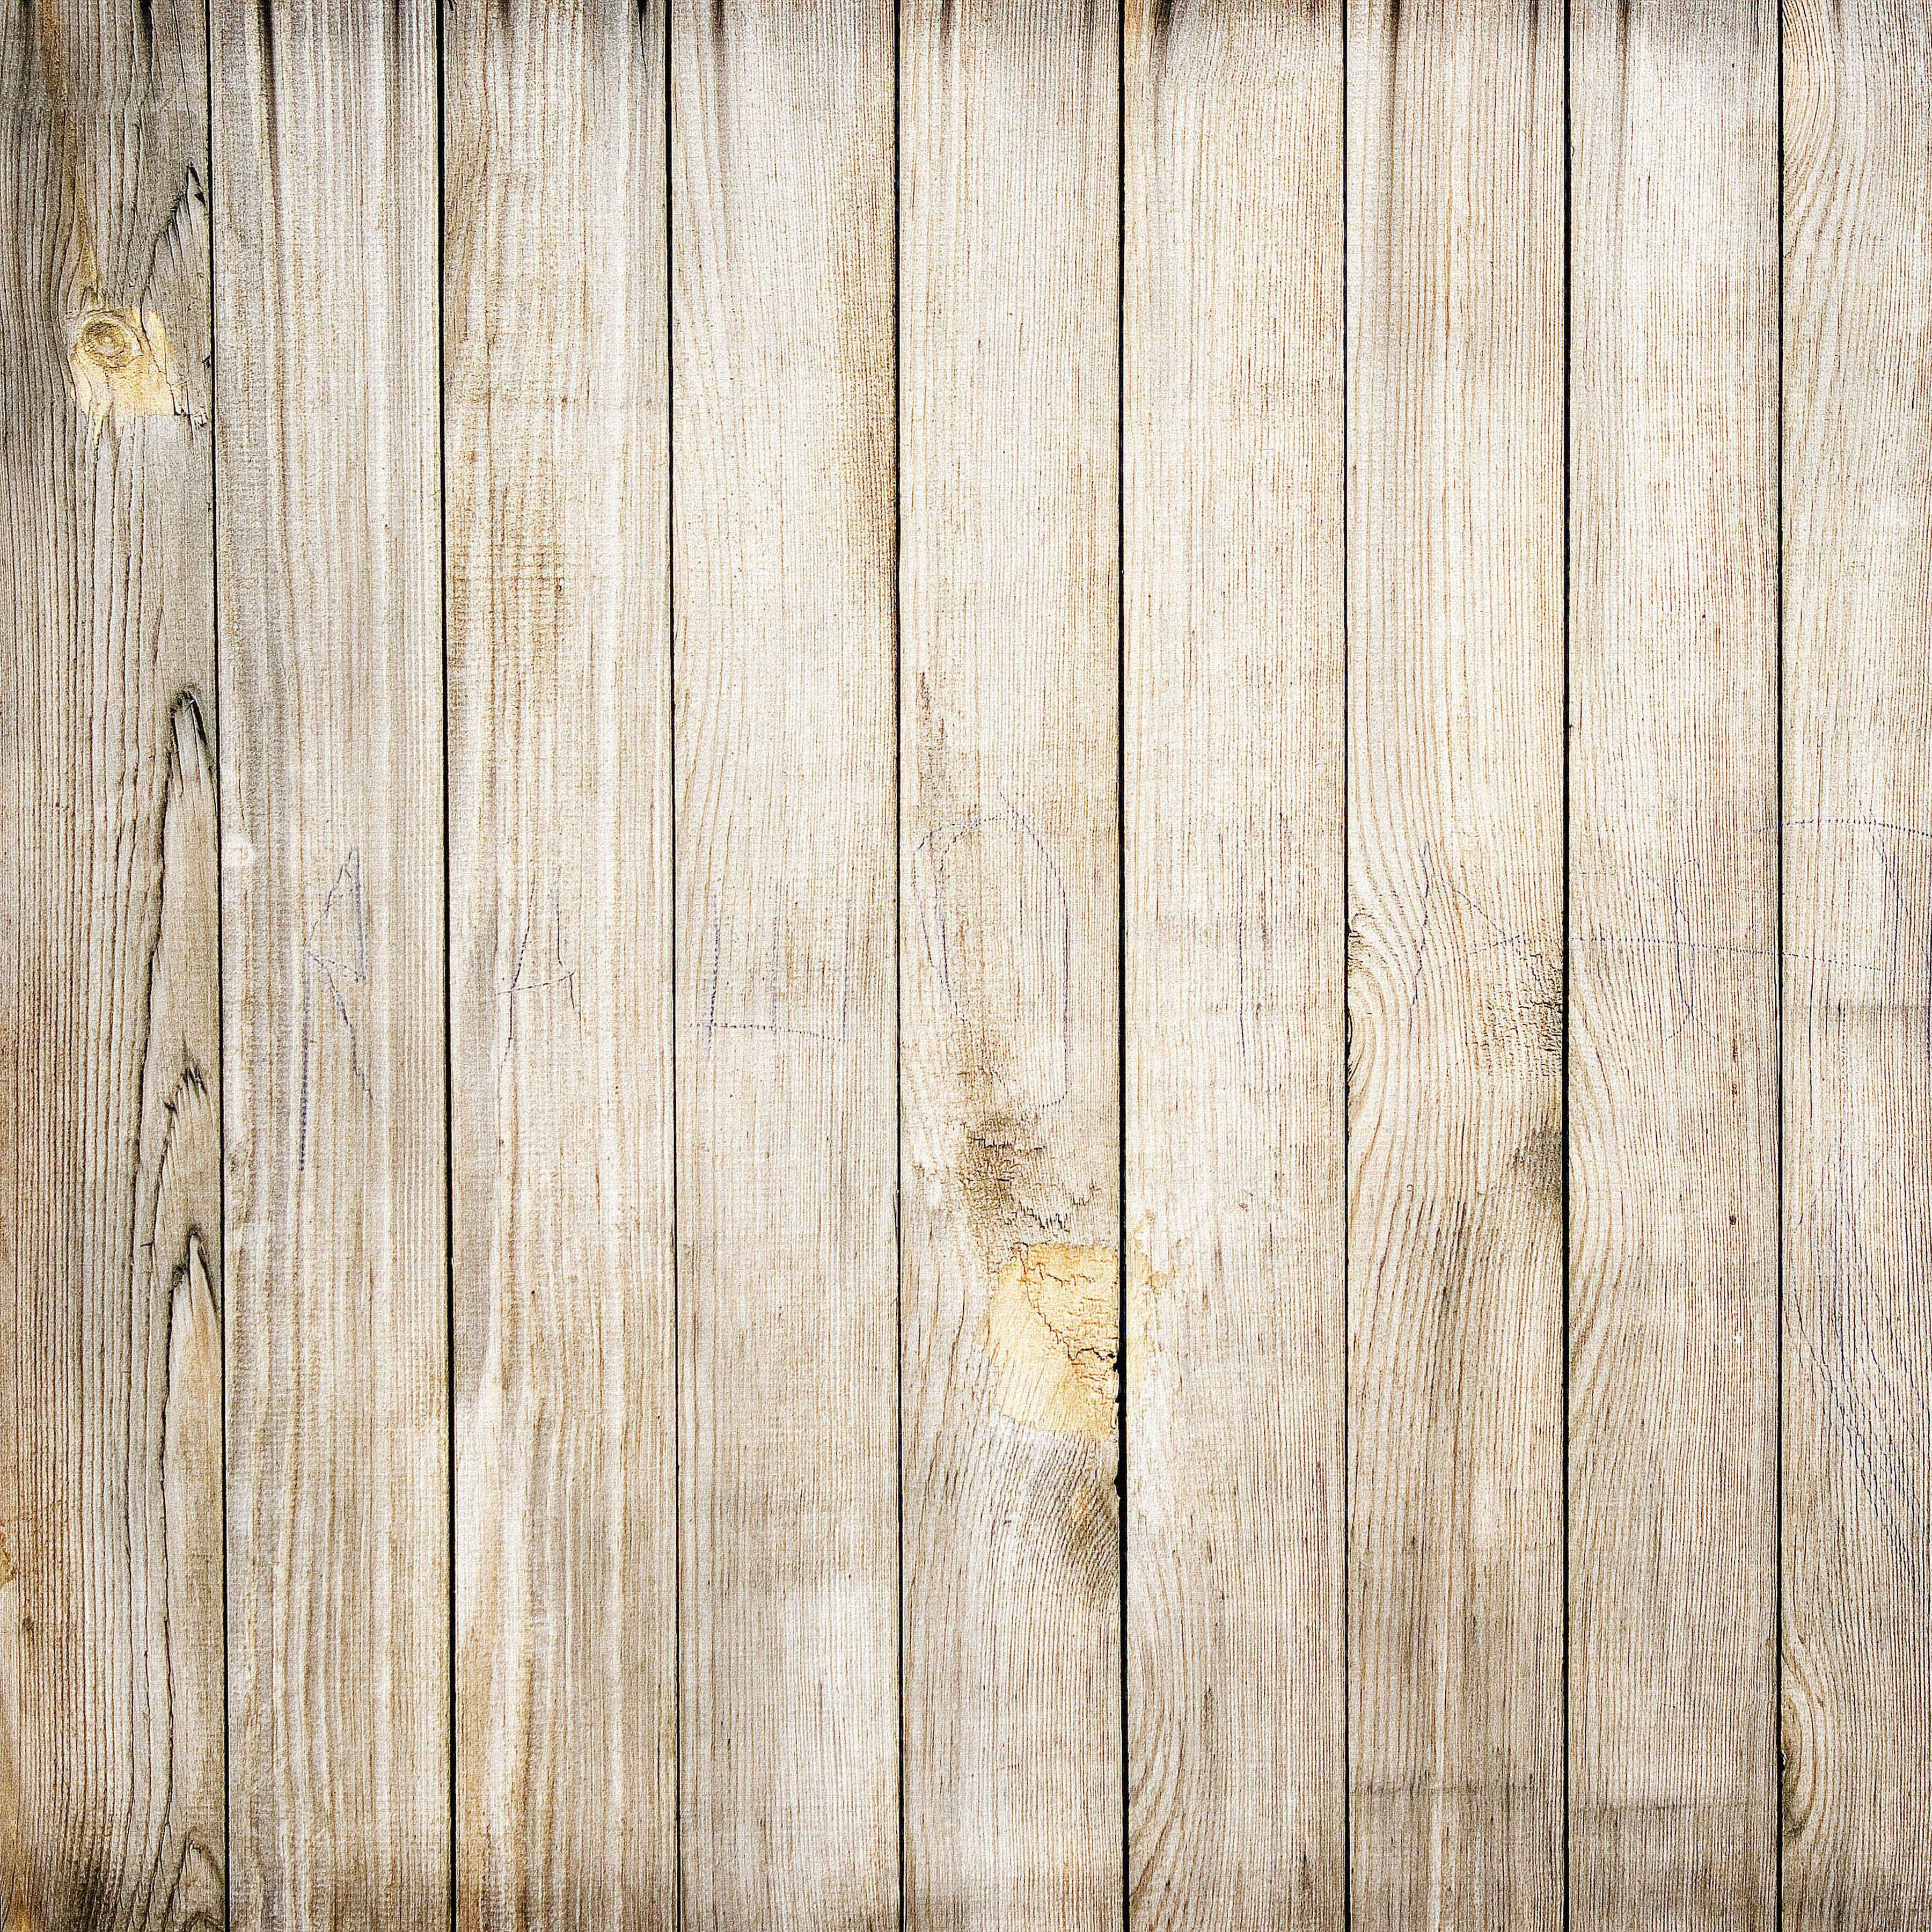 Http Firewood ~ Free wood backgrounds http media cache ec pinimg